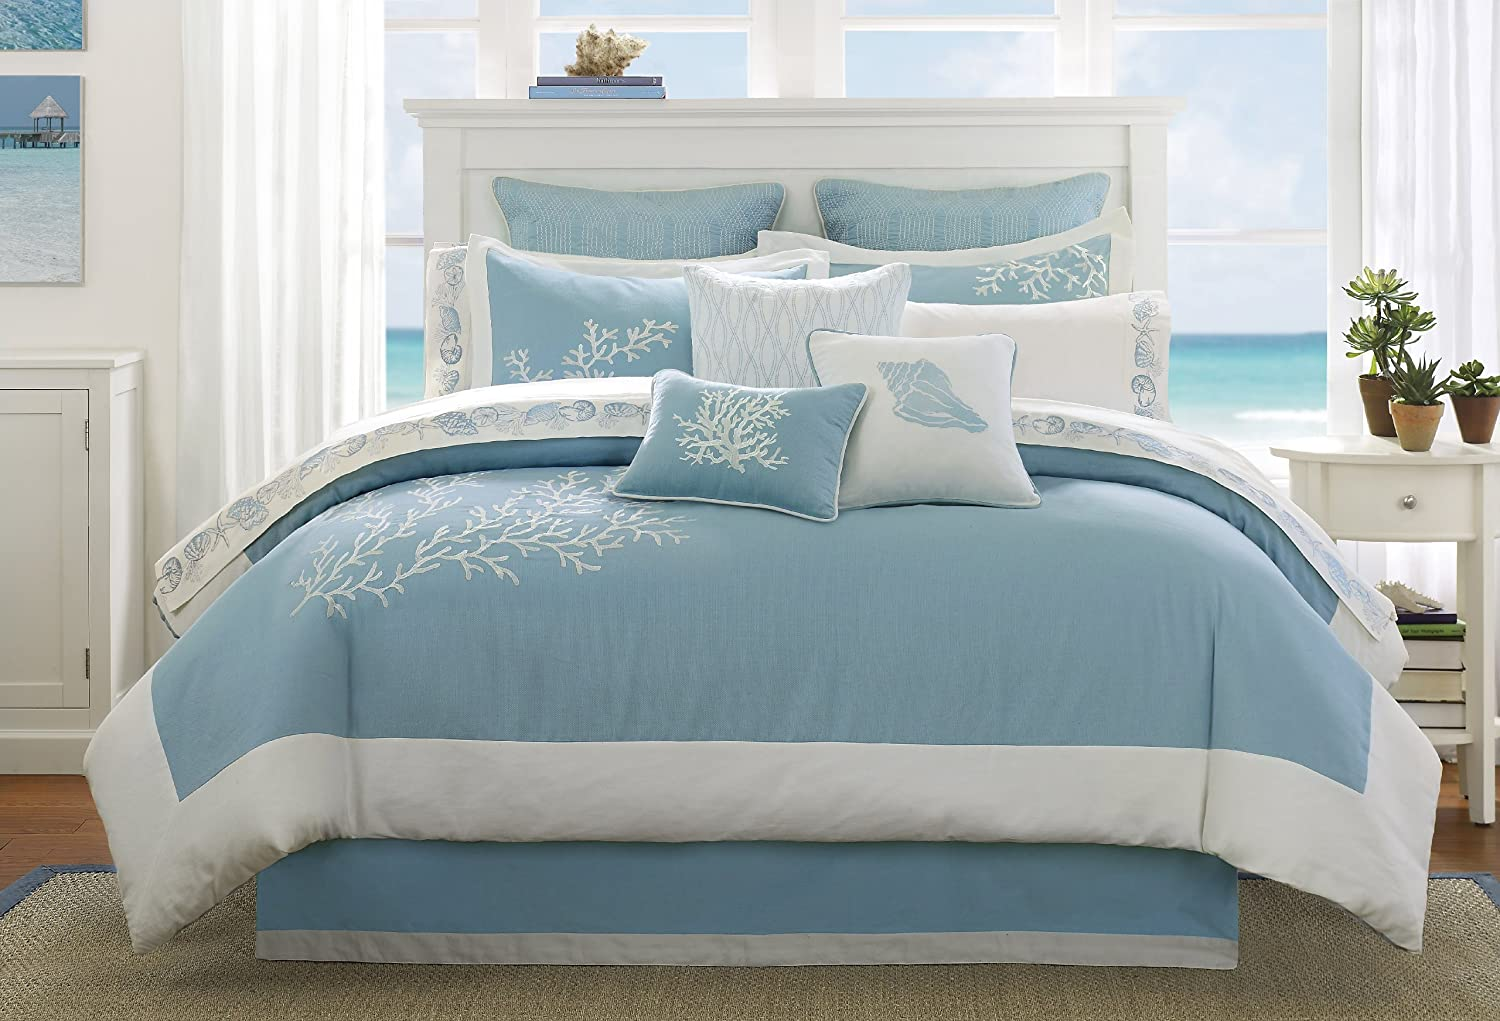 Brilliant Blue Beach Comforter Sets 1500 x 1021 · 226 kB · jpeg